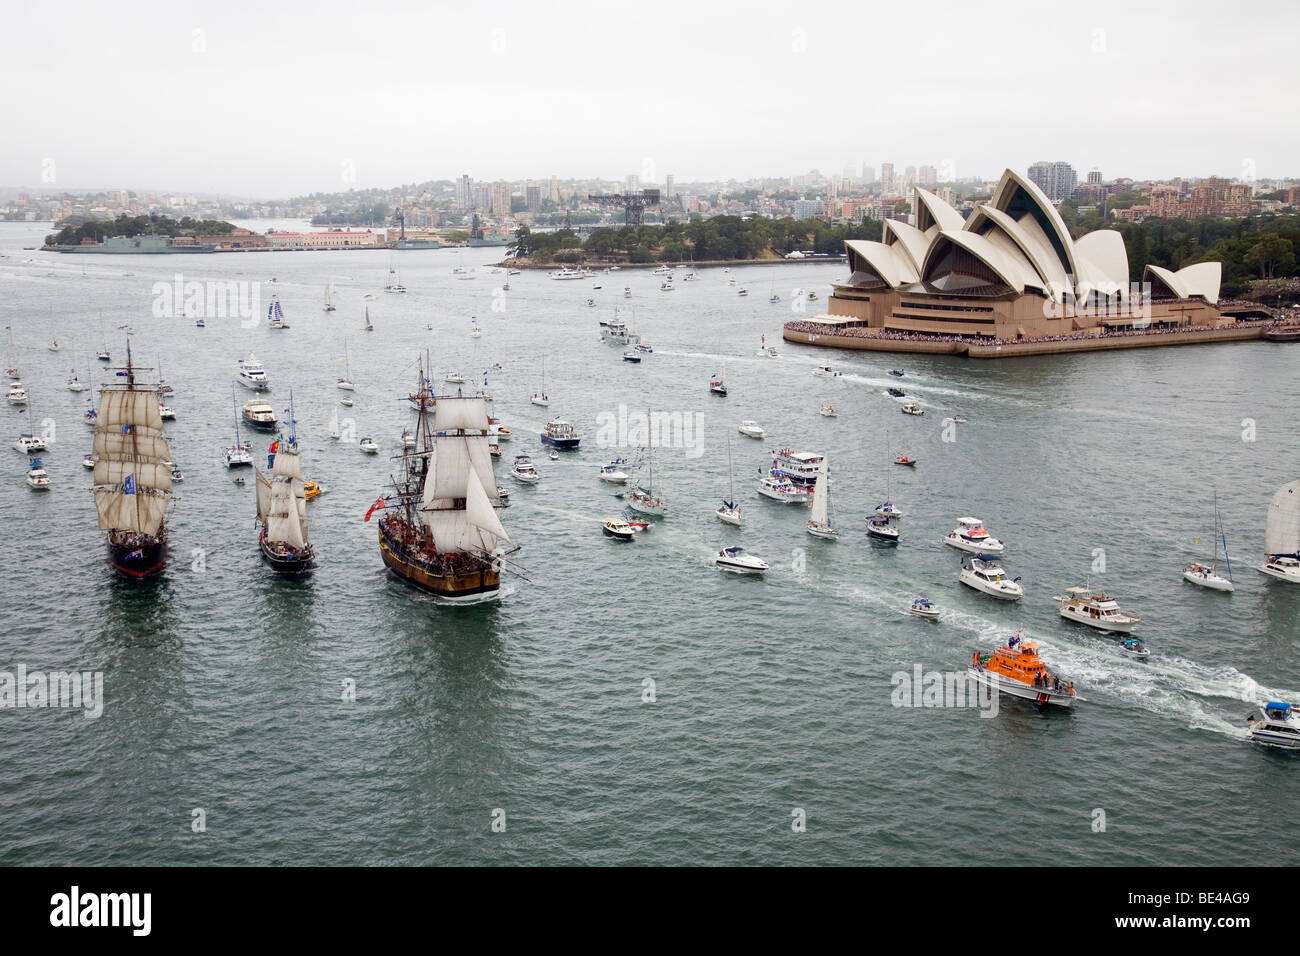 Annual Tall Ships Race regatta on Sydney Harbour - part of Australia Day celebrations. Sydney, New South Wales, - Stock Image